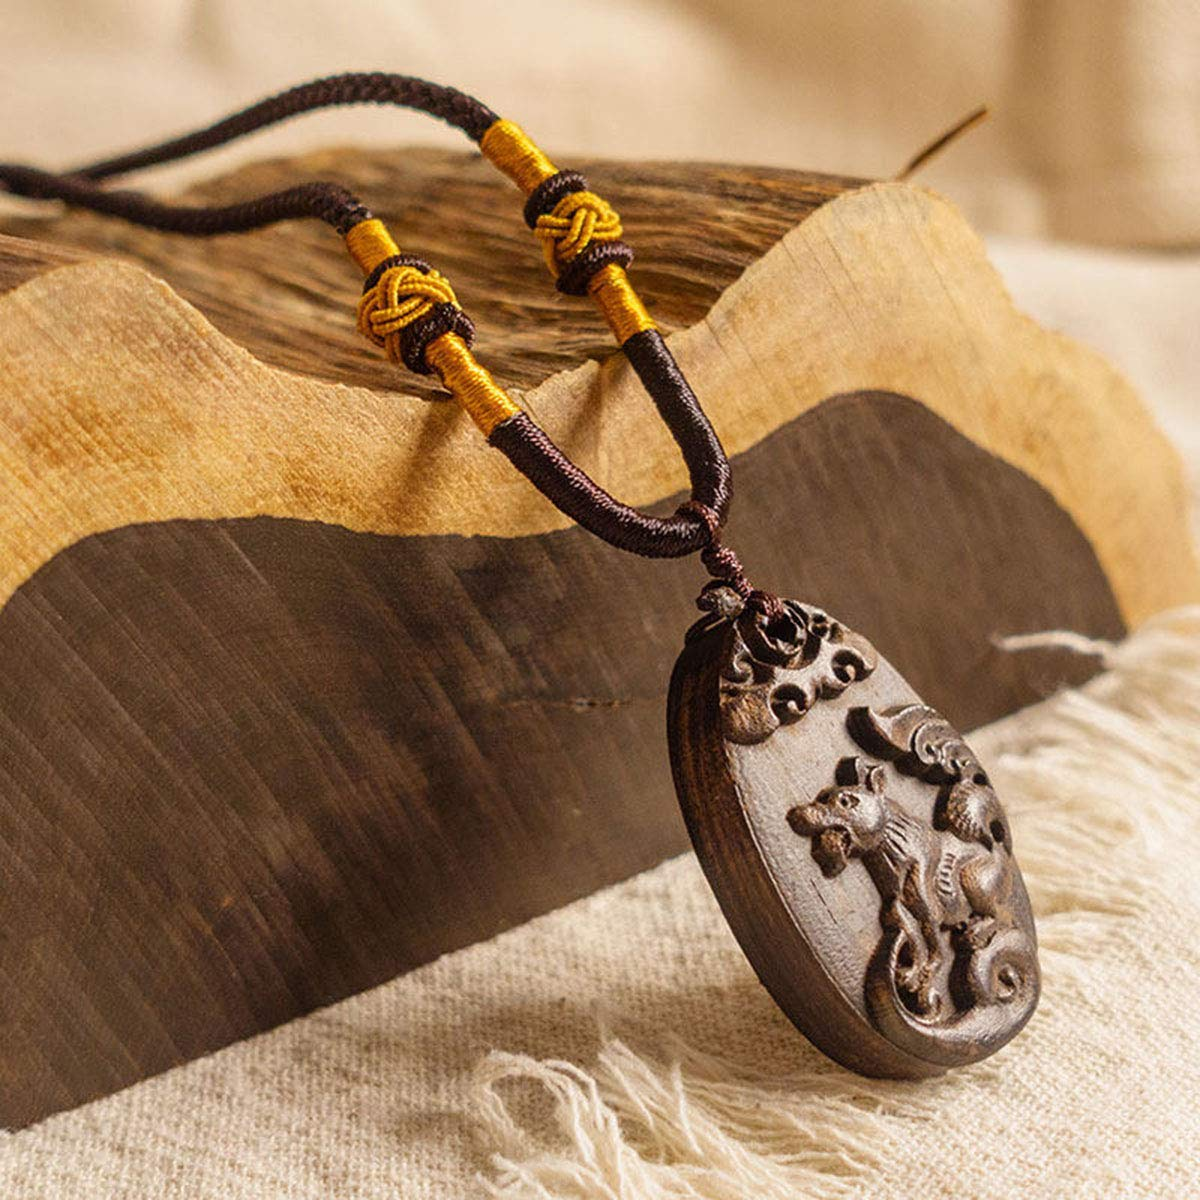 Onlyfo Vintage Wooden Dog Oval Pendant Necklace with Jewelry Box,Dog Necklace for Women,Men (Black)